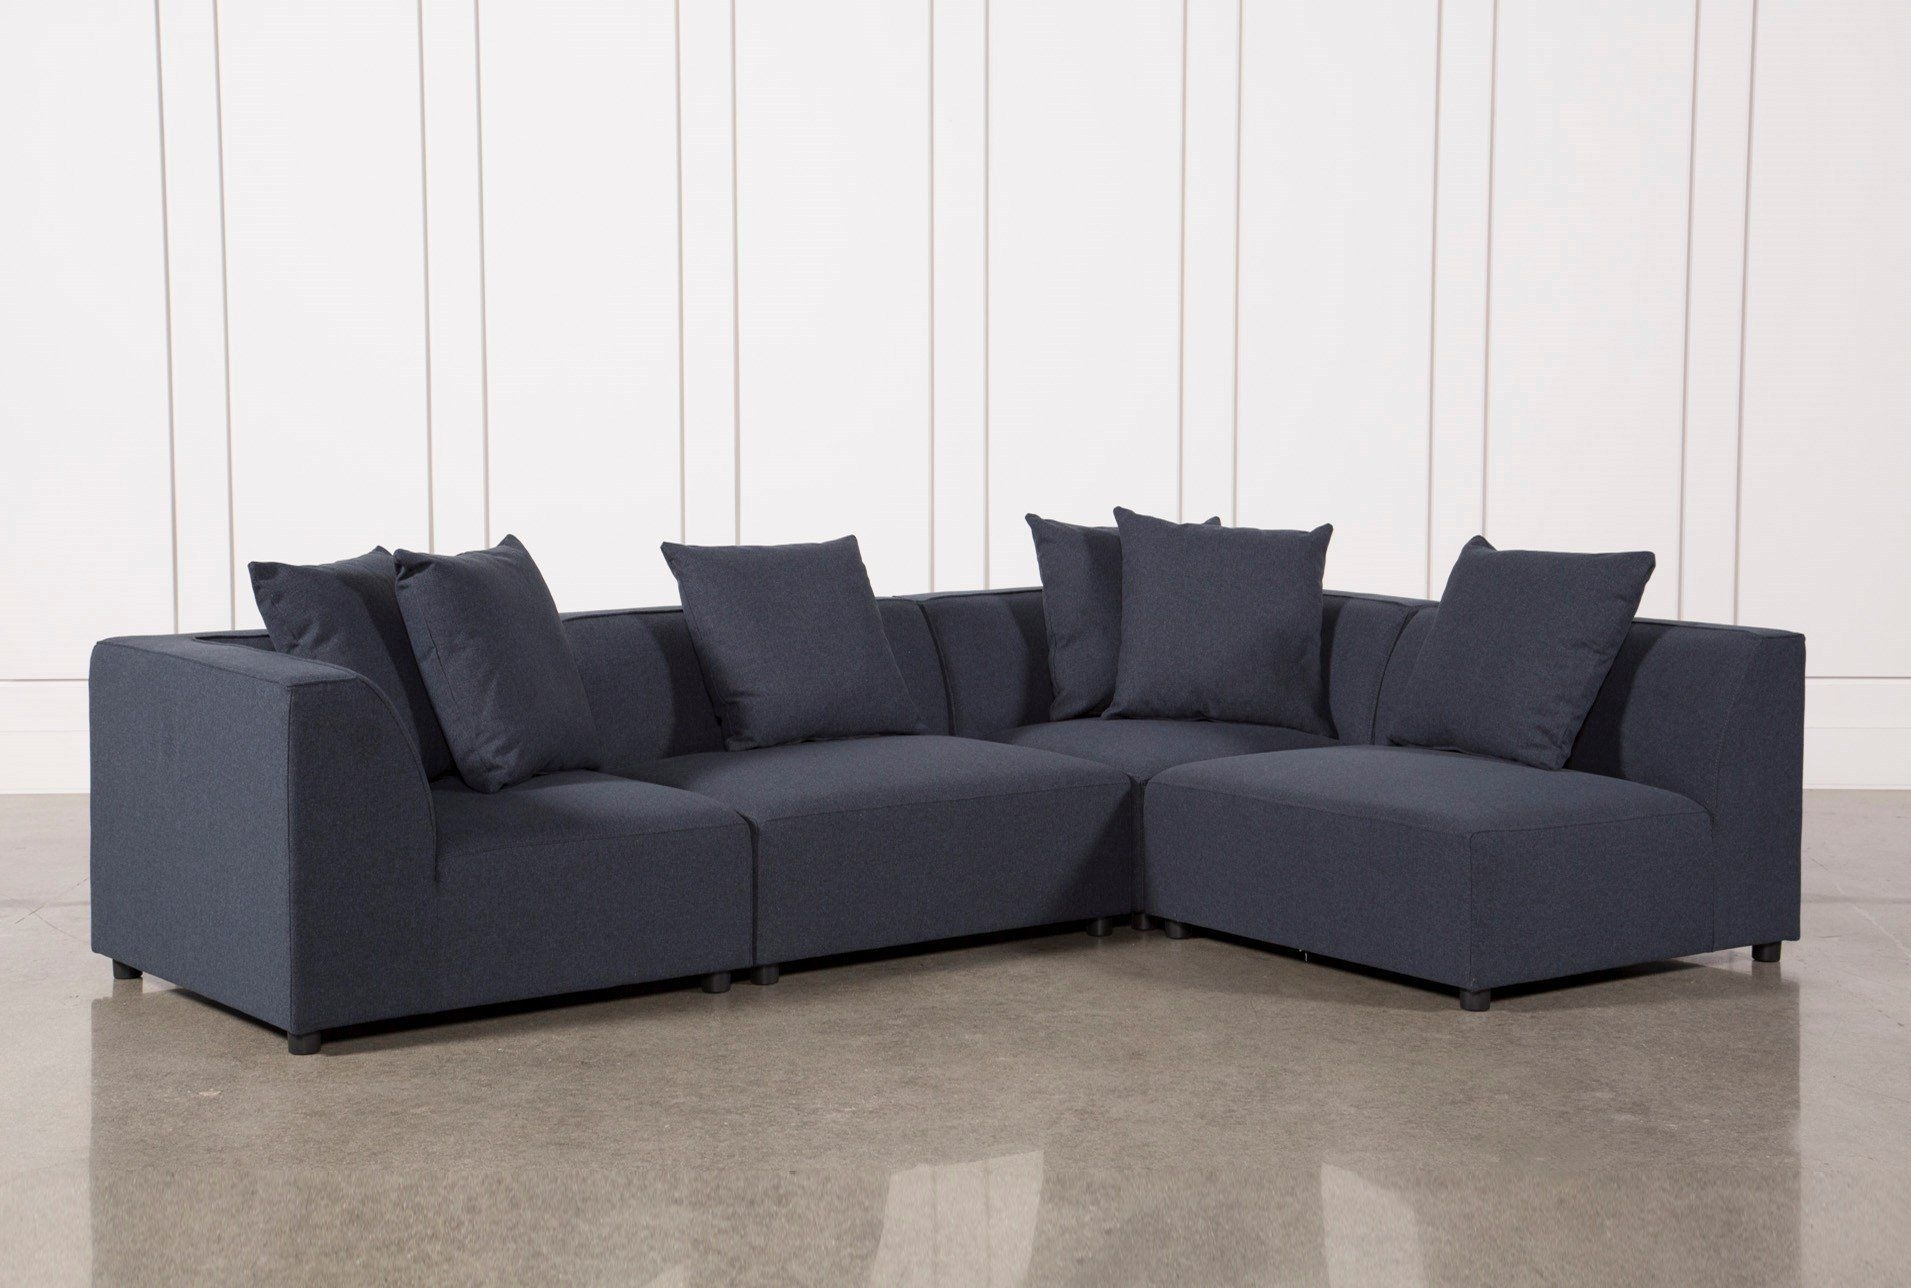 Our Clayton 4-Piece Sectional Allows You To Enjoy An Ultra-Modern inside Aidan 4 Piece Sectionals (Image 22 of 30)